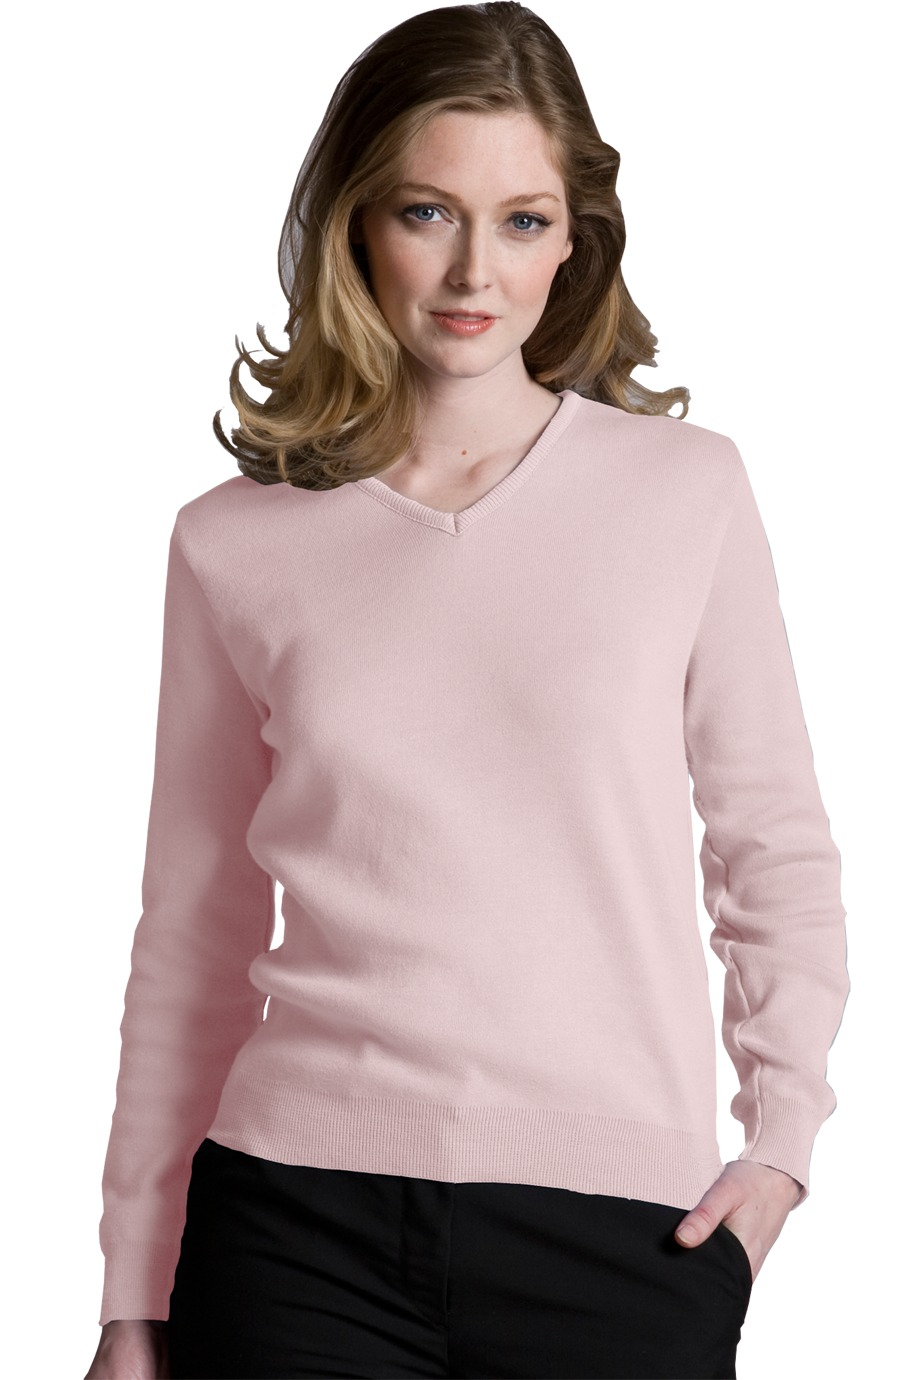 Edwards Garment 090 - Women's Cotton Cashmere V-Neck ...